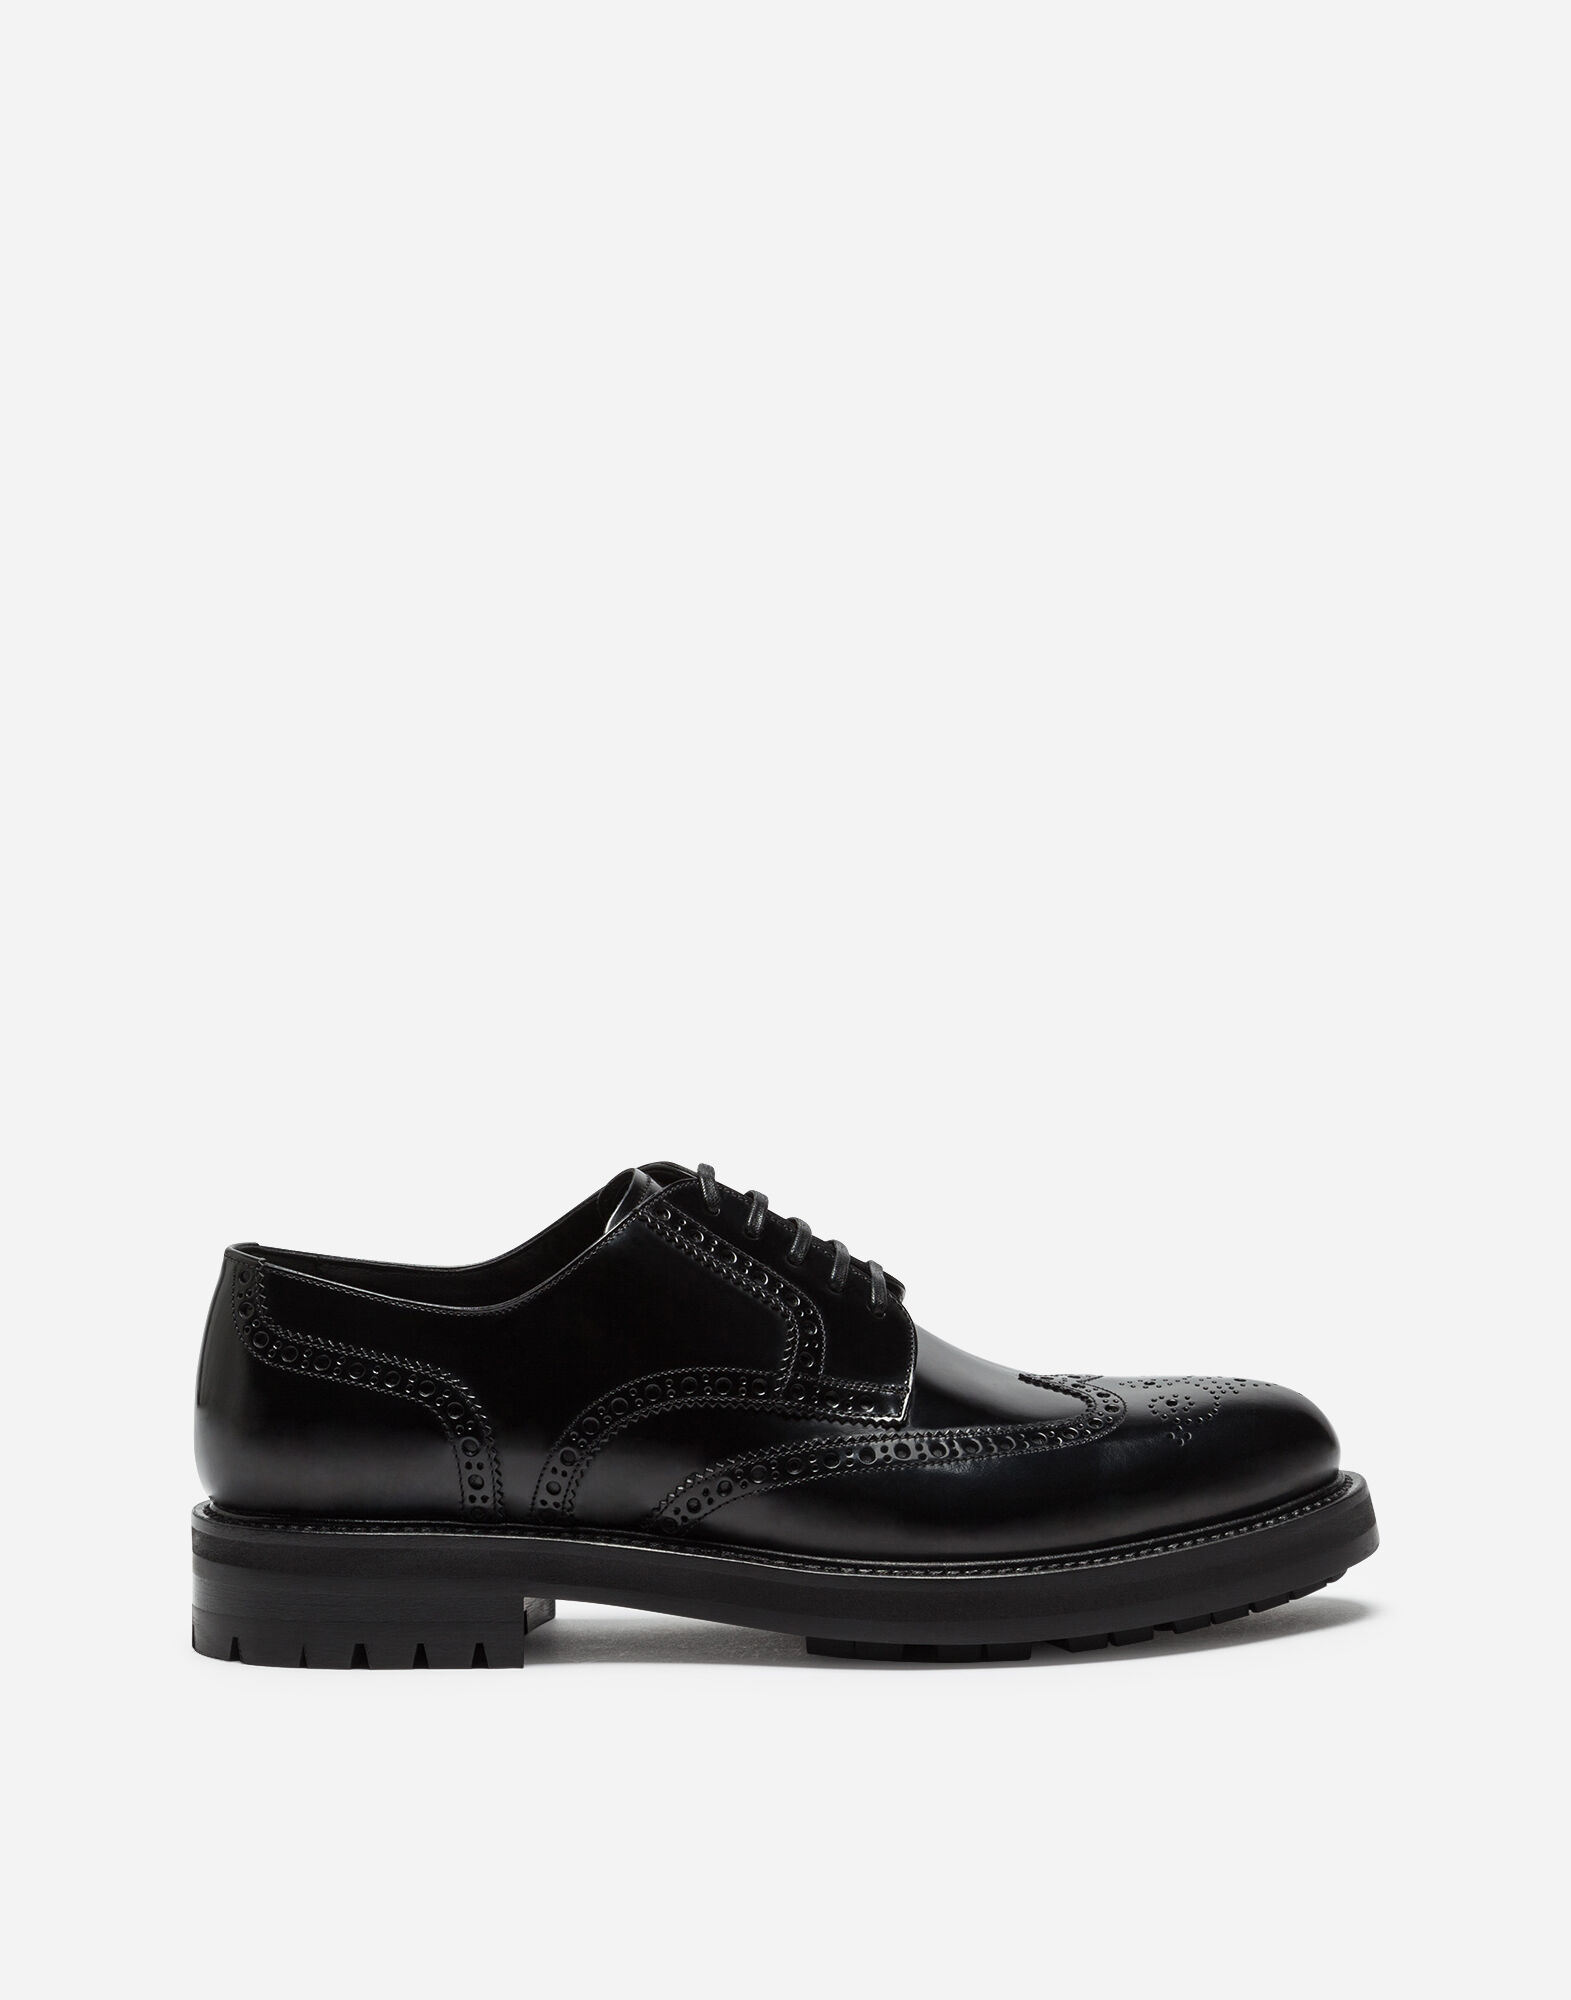 FULL BROGUE DERBY SHOES IN BRUSHED CALFSKIN from DOLCE & GABBANA